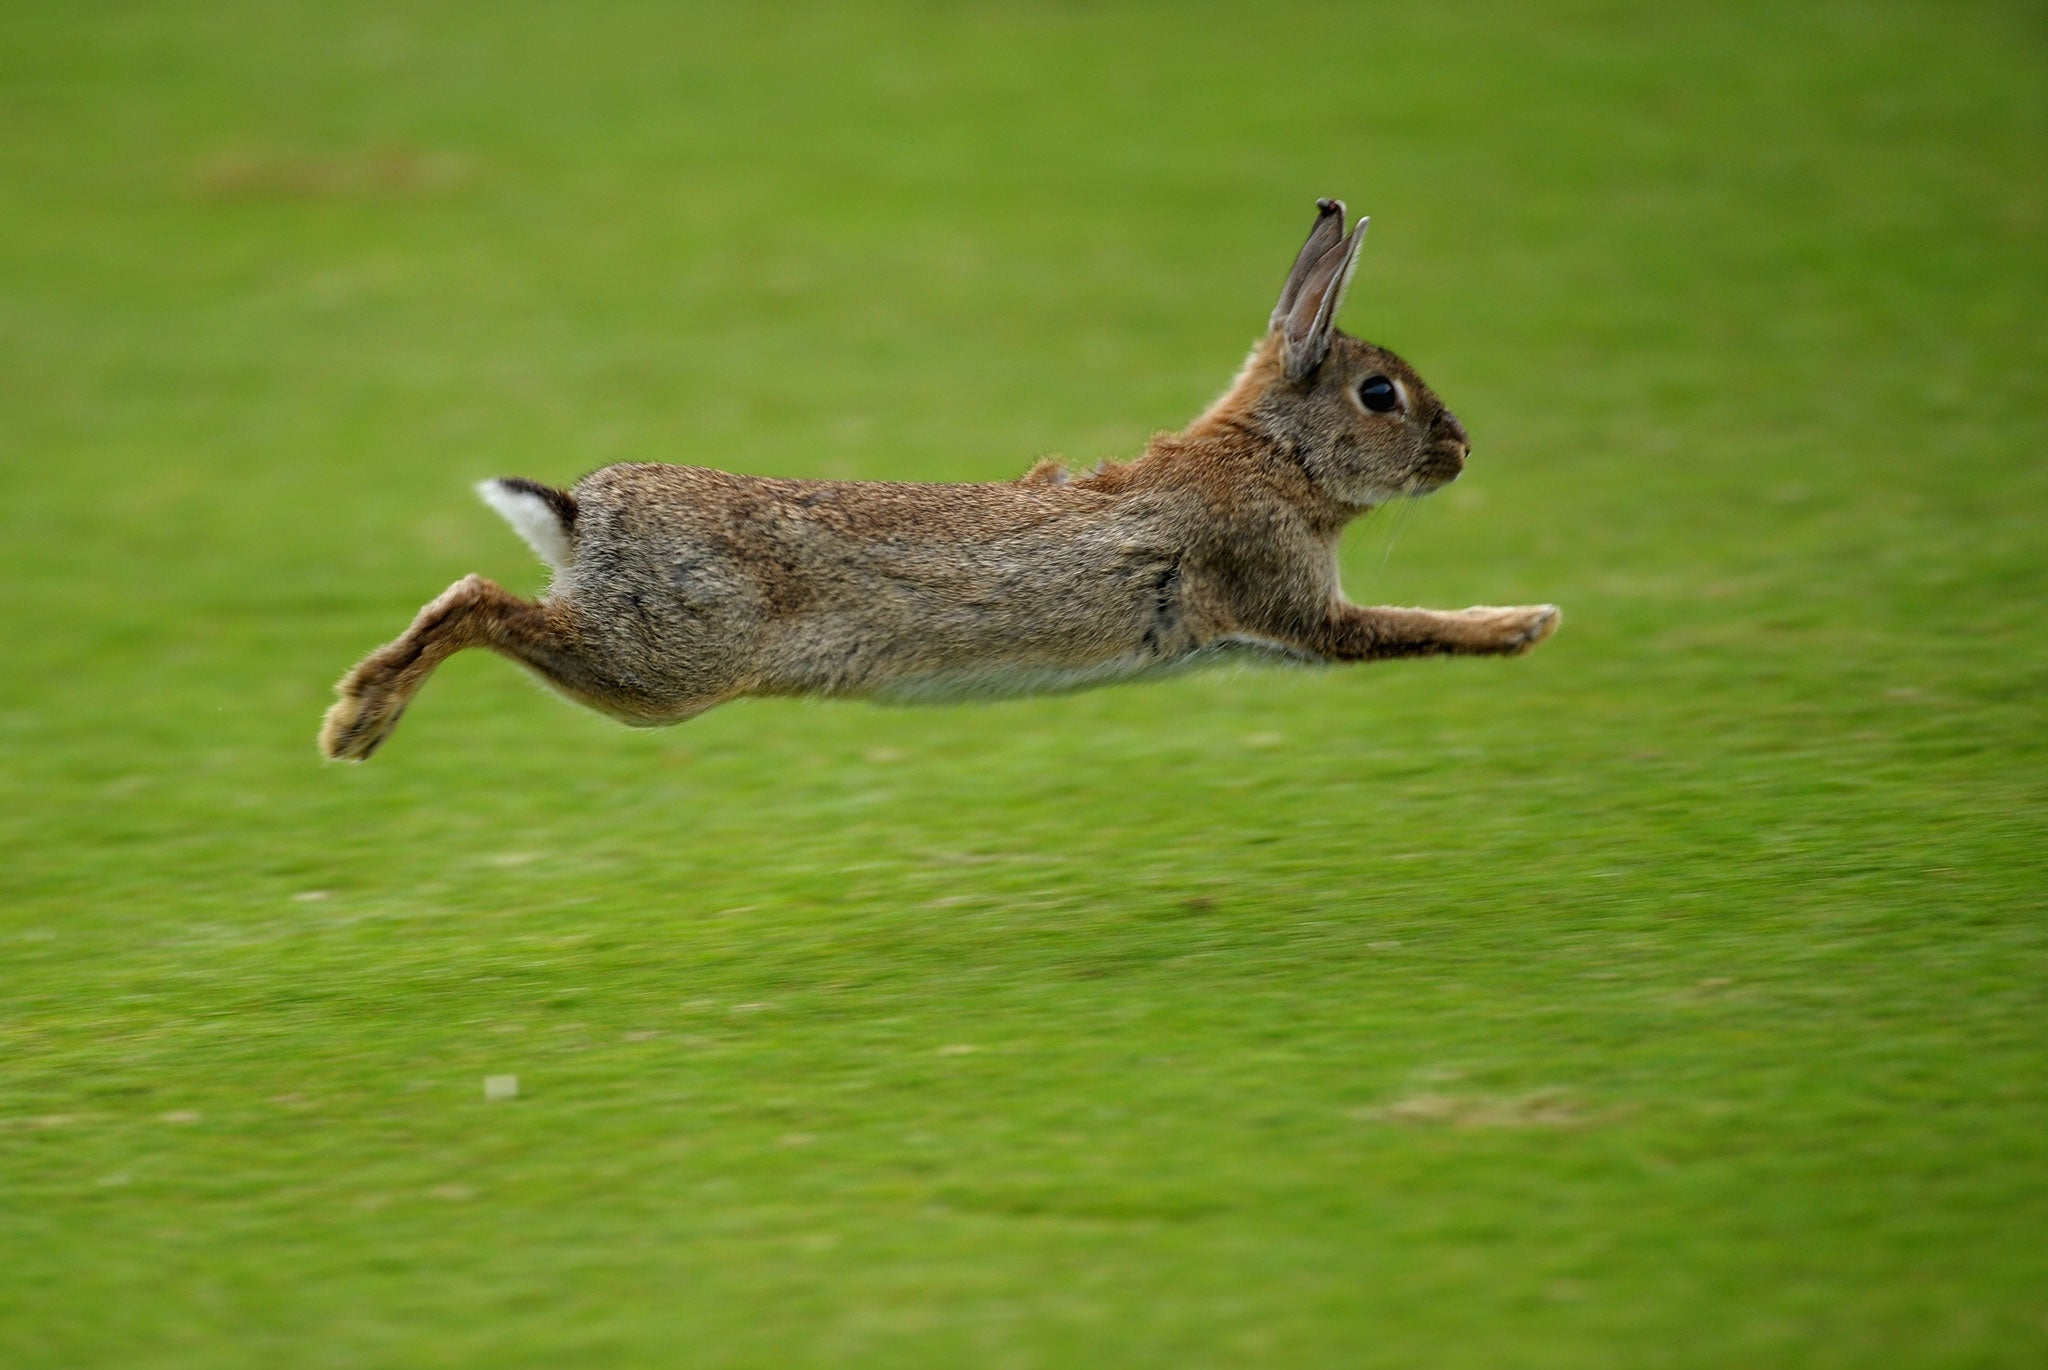 Show jumping rabbit is actually priceless | The Independent